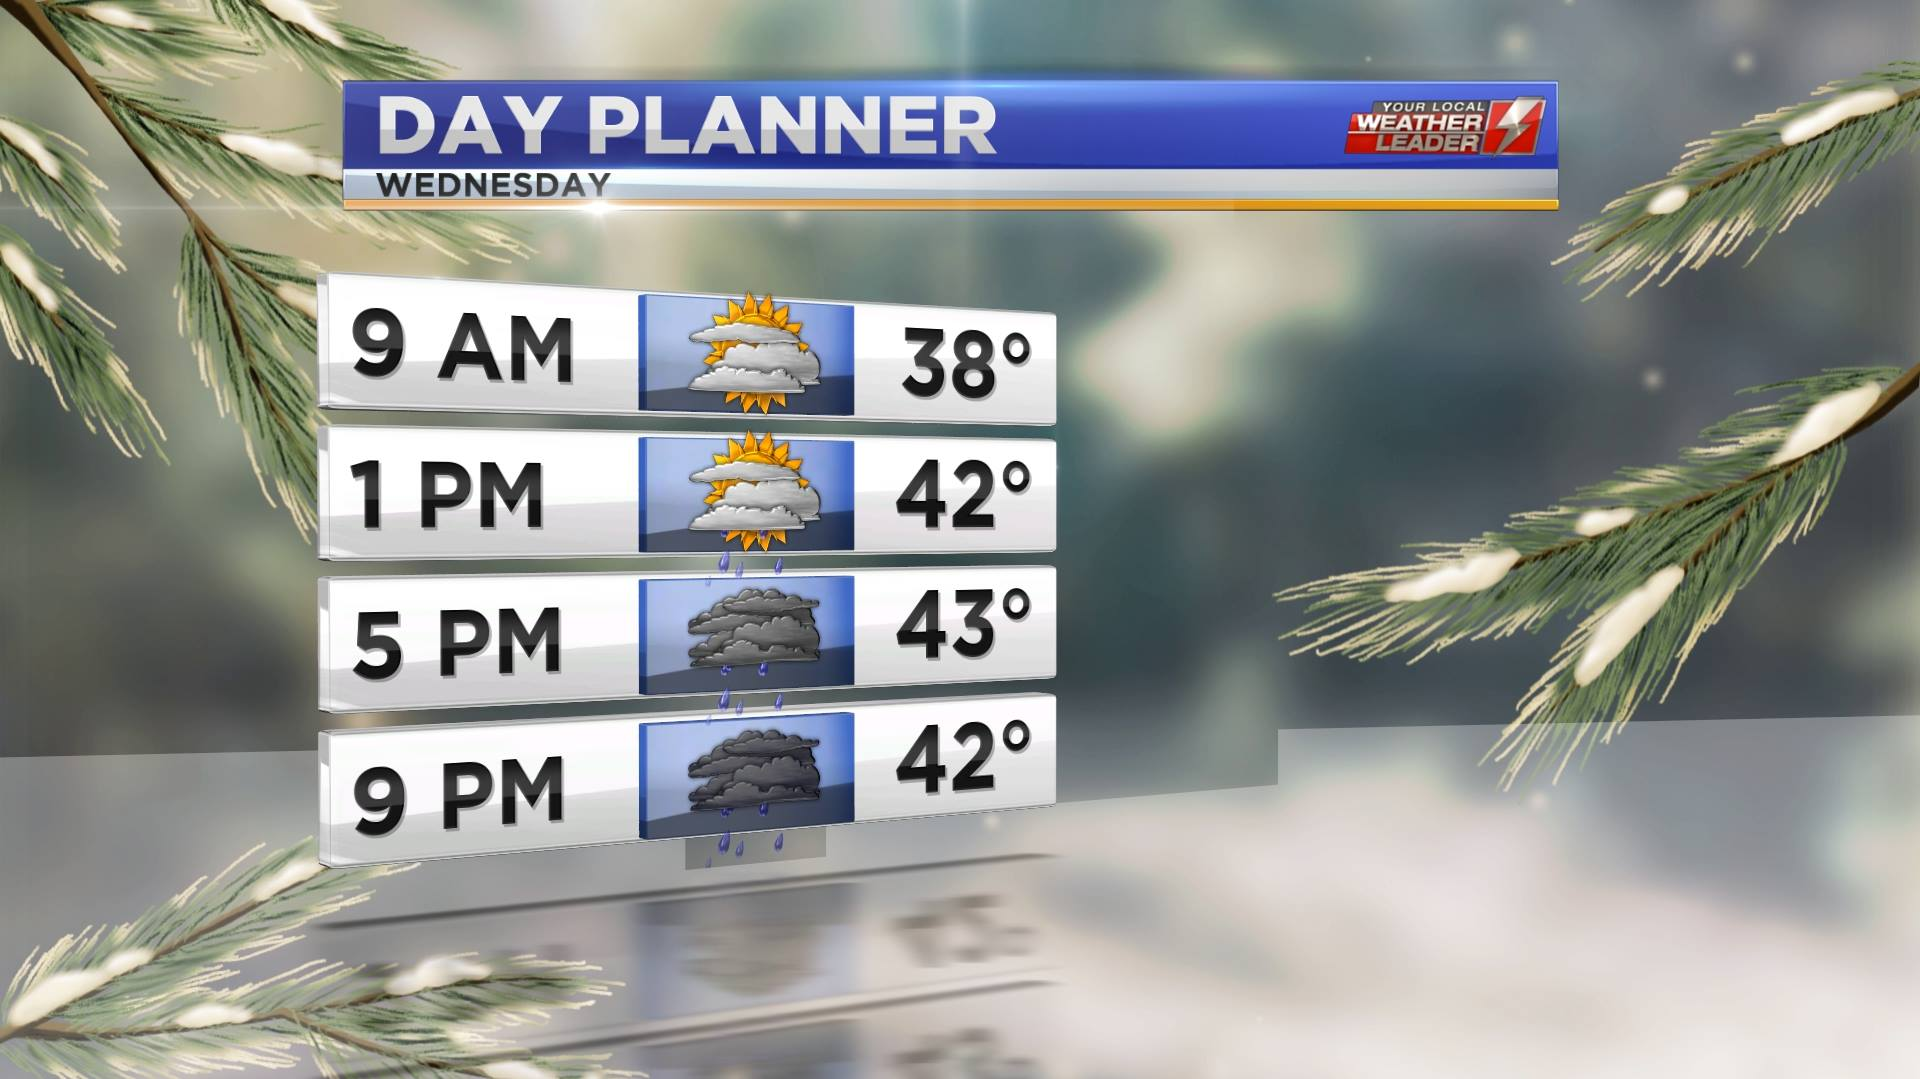 Day Planner for Wednesday 06 February 2019